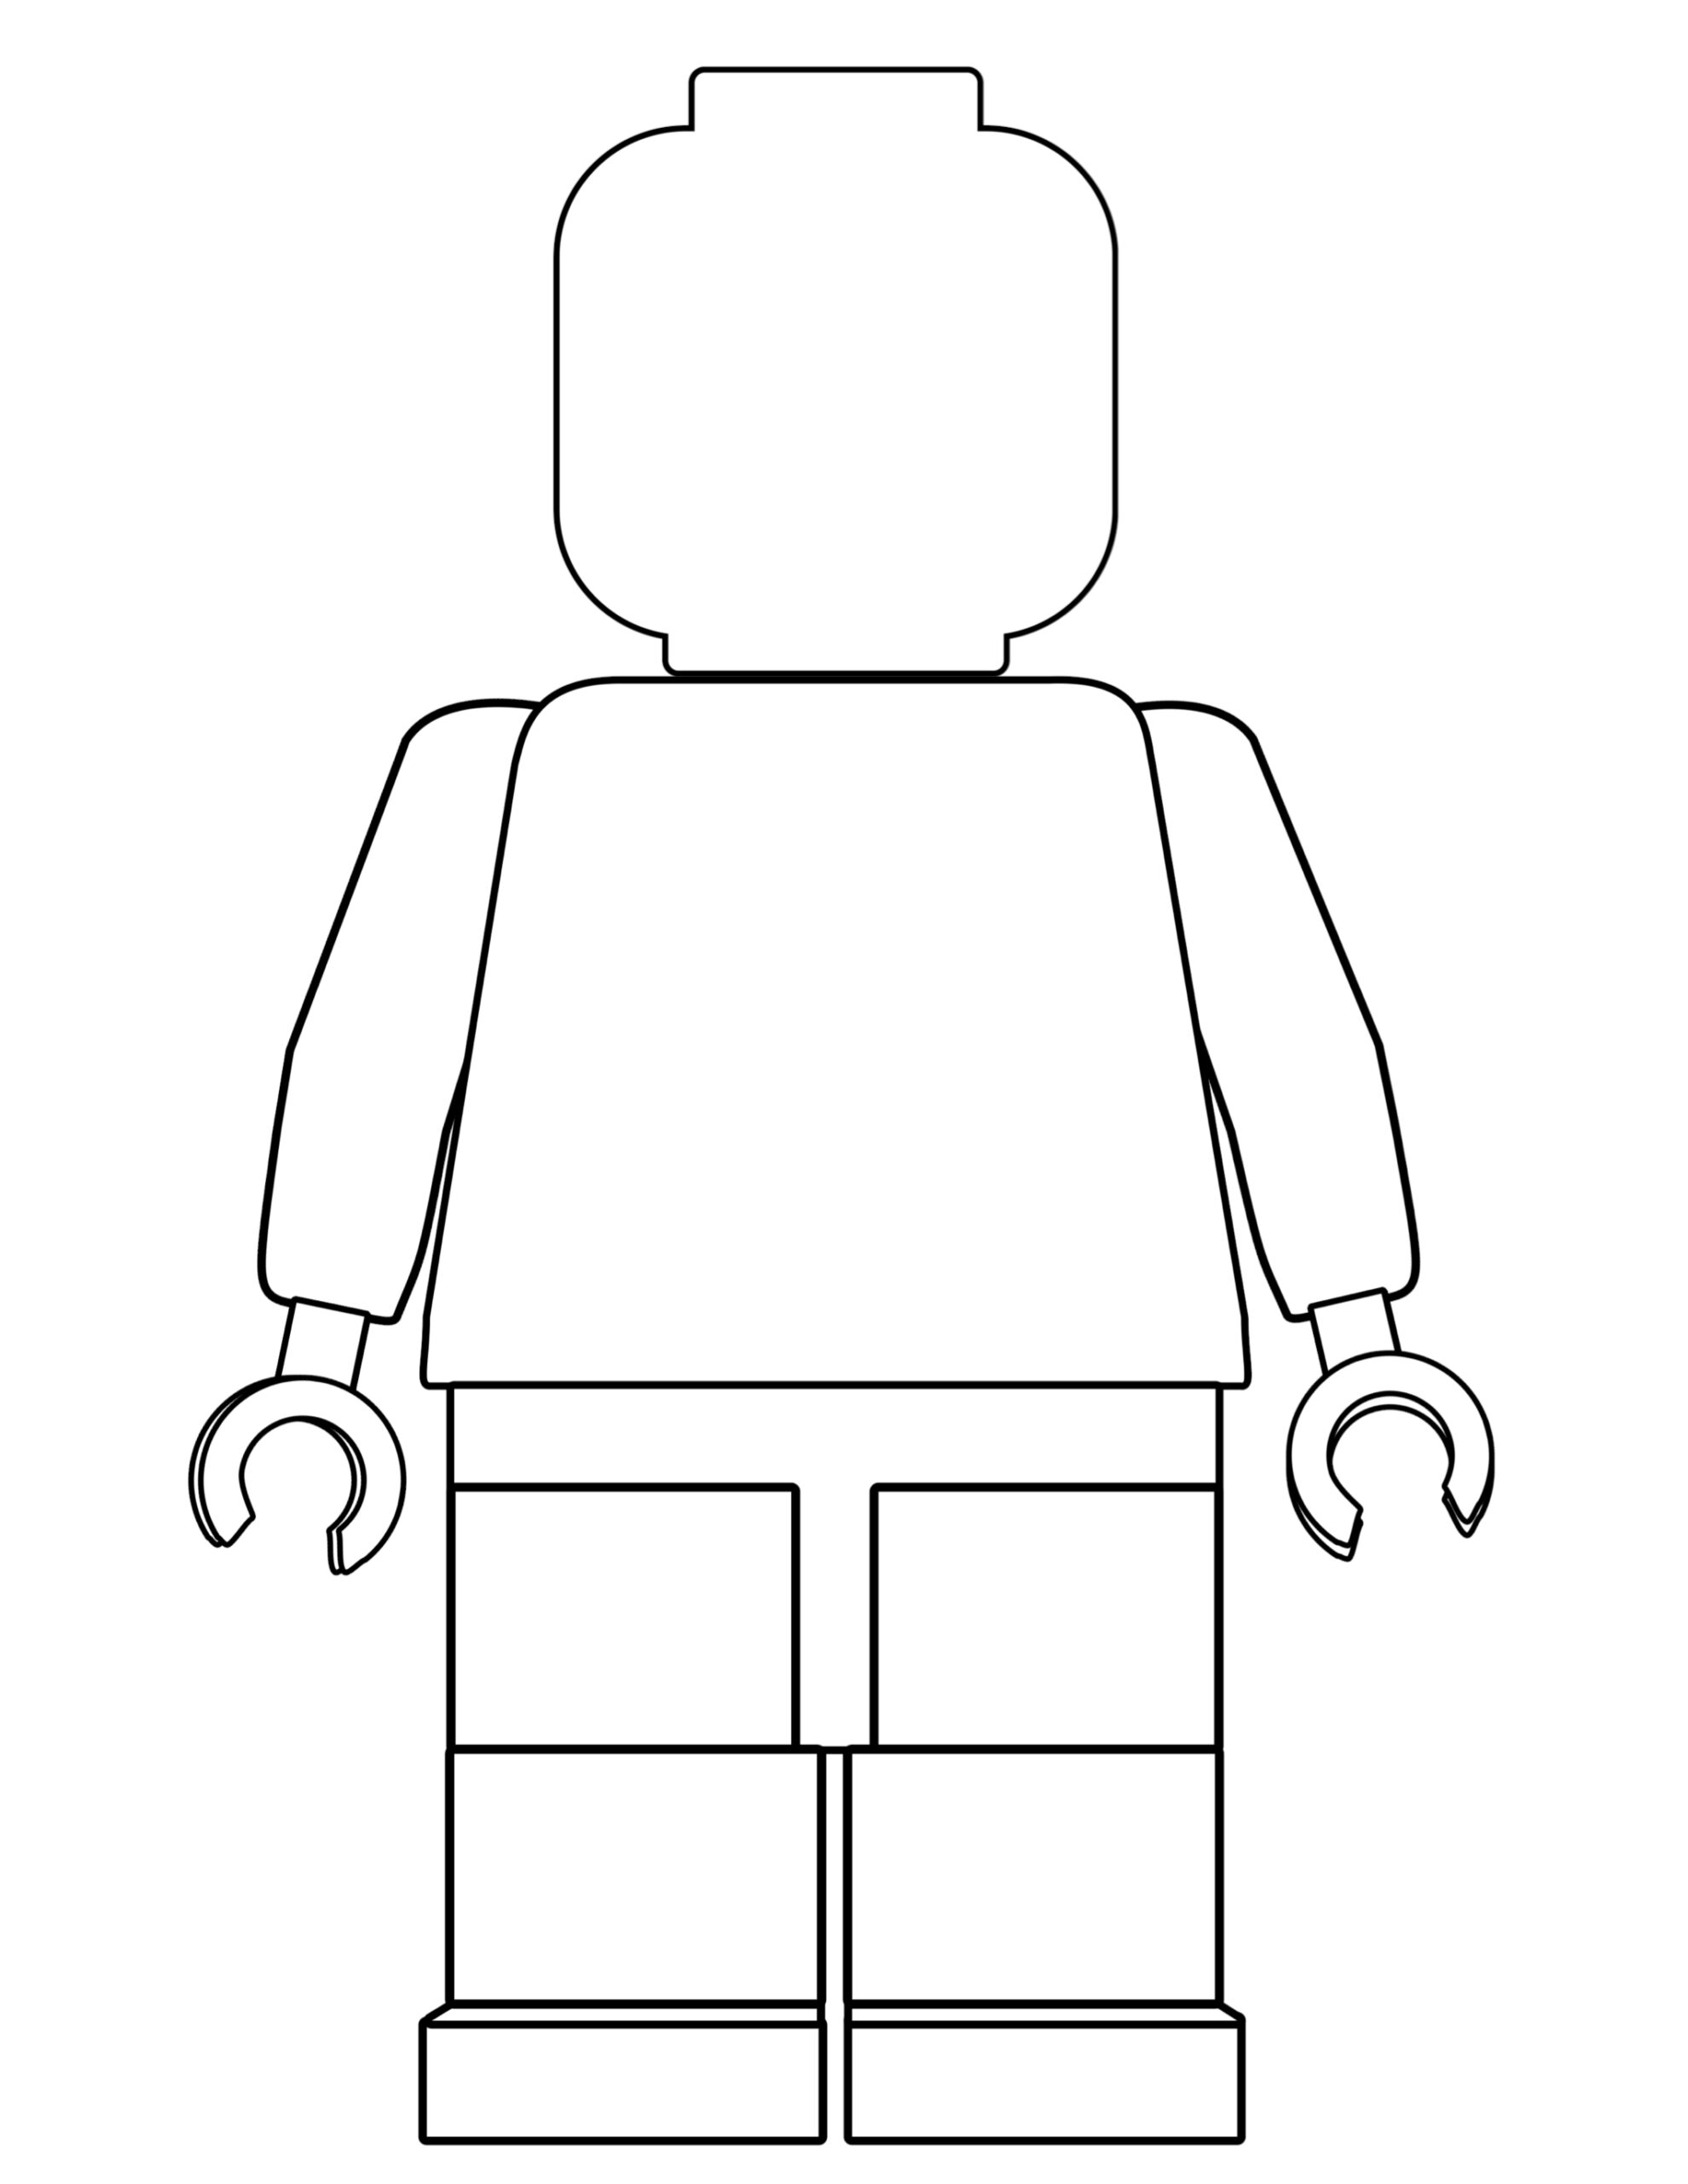 lego coloring pages printable free free easy to print lego coloring pages tulamama pages lego printable coloring free